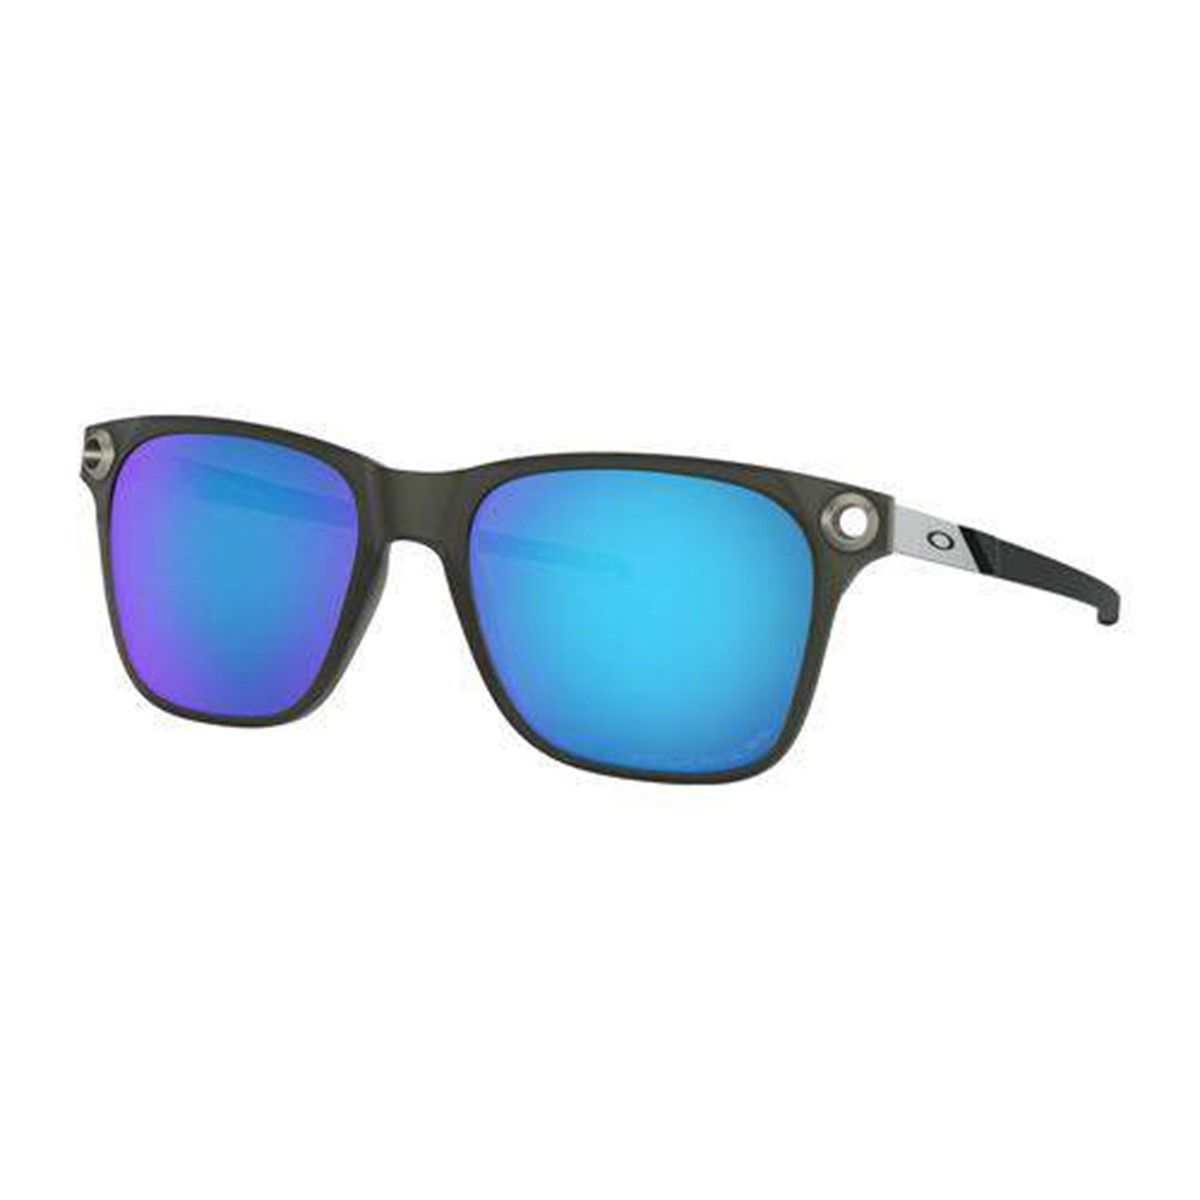 Óculos de Sol Oakley Apparation Satin Sapphire Iridium Polarized